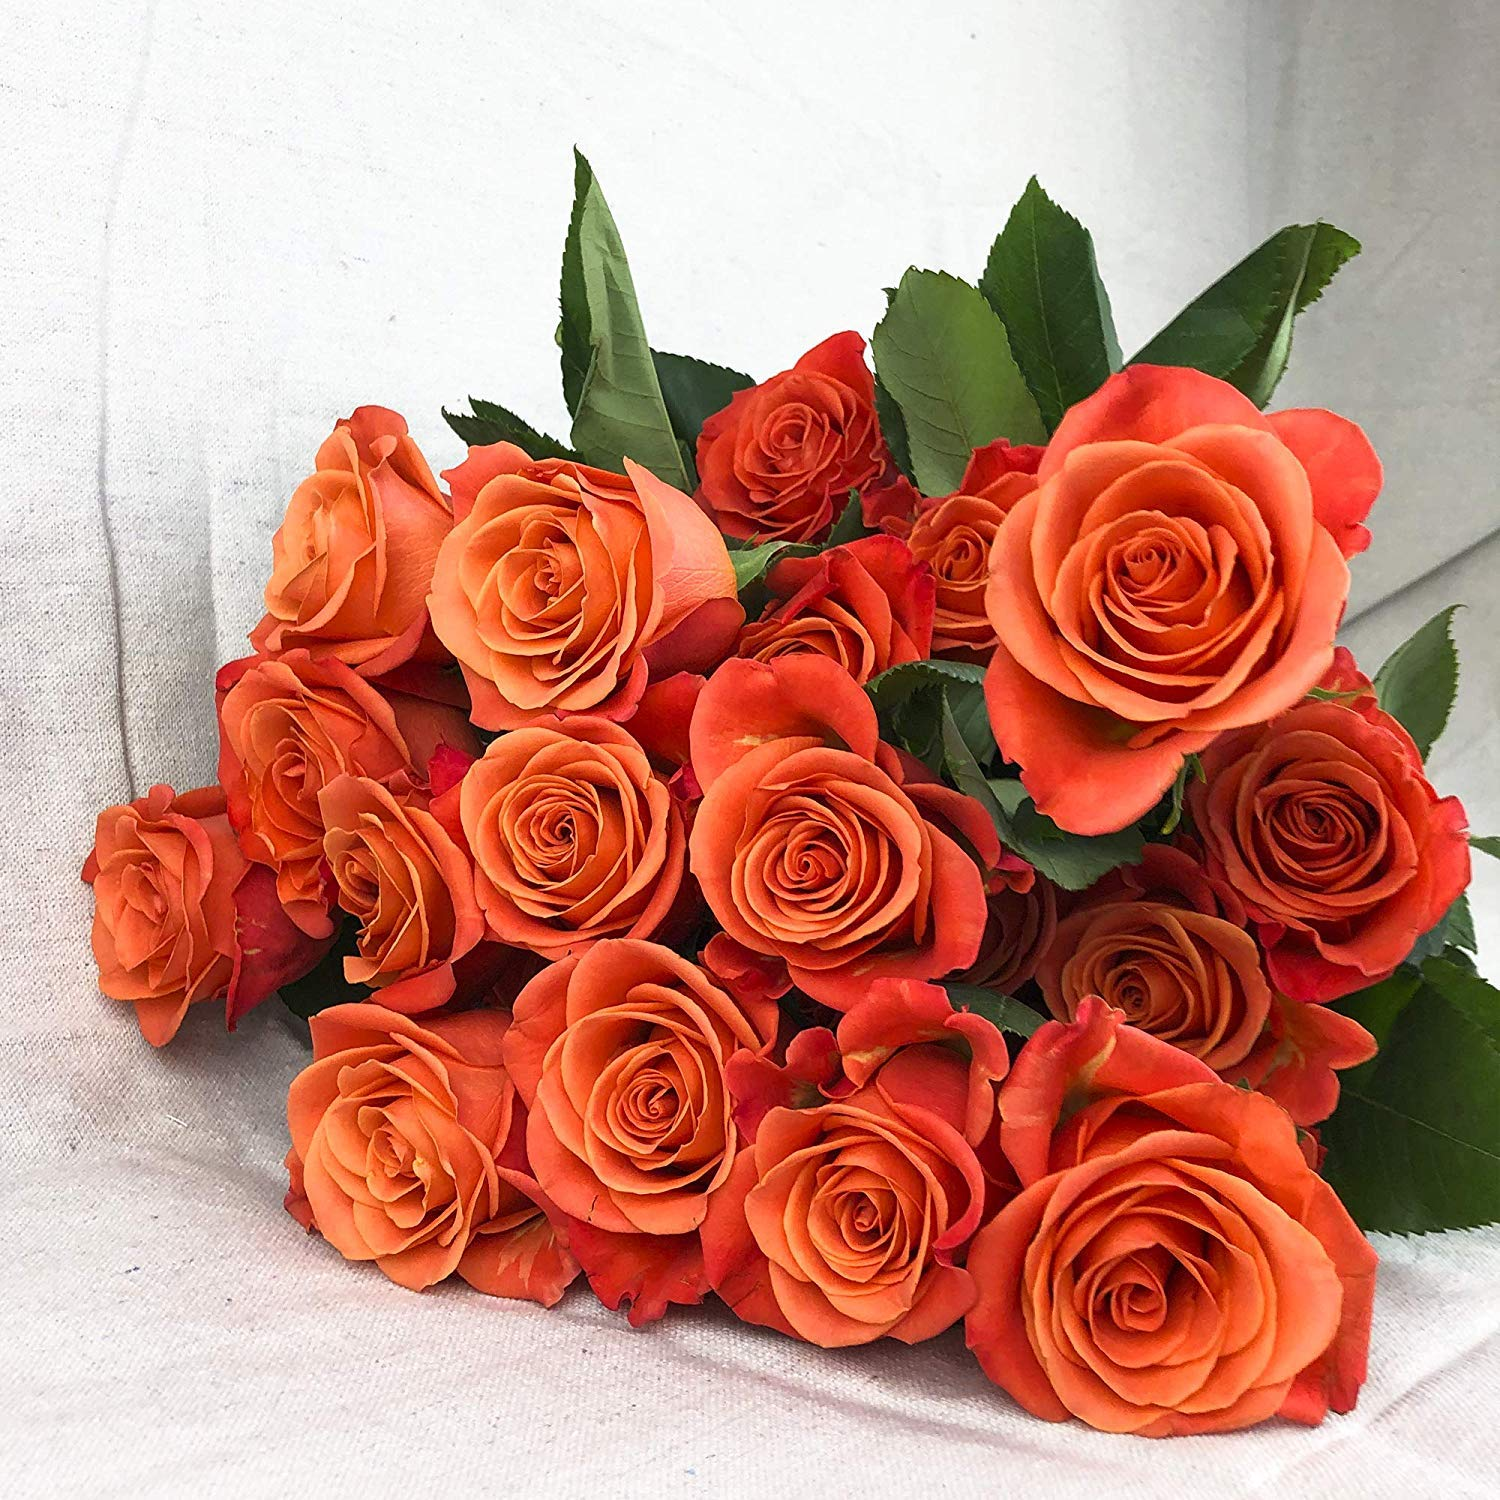 Green Choice Flowers - 24 (2 Dozen) Premium Orange Fresh Roses with 20 inch Long Stem Farm Fresh Flowers Beautiful Orange Rose Flower Cut Per Order Direct from Farm Free Fast Delivery Long Lasting by Greenchoiceflowers (Image #4)